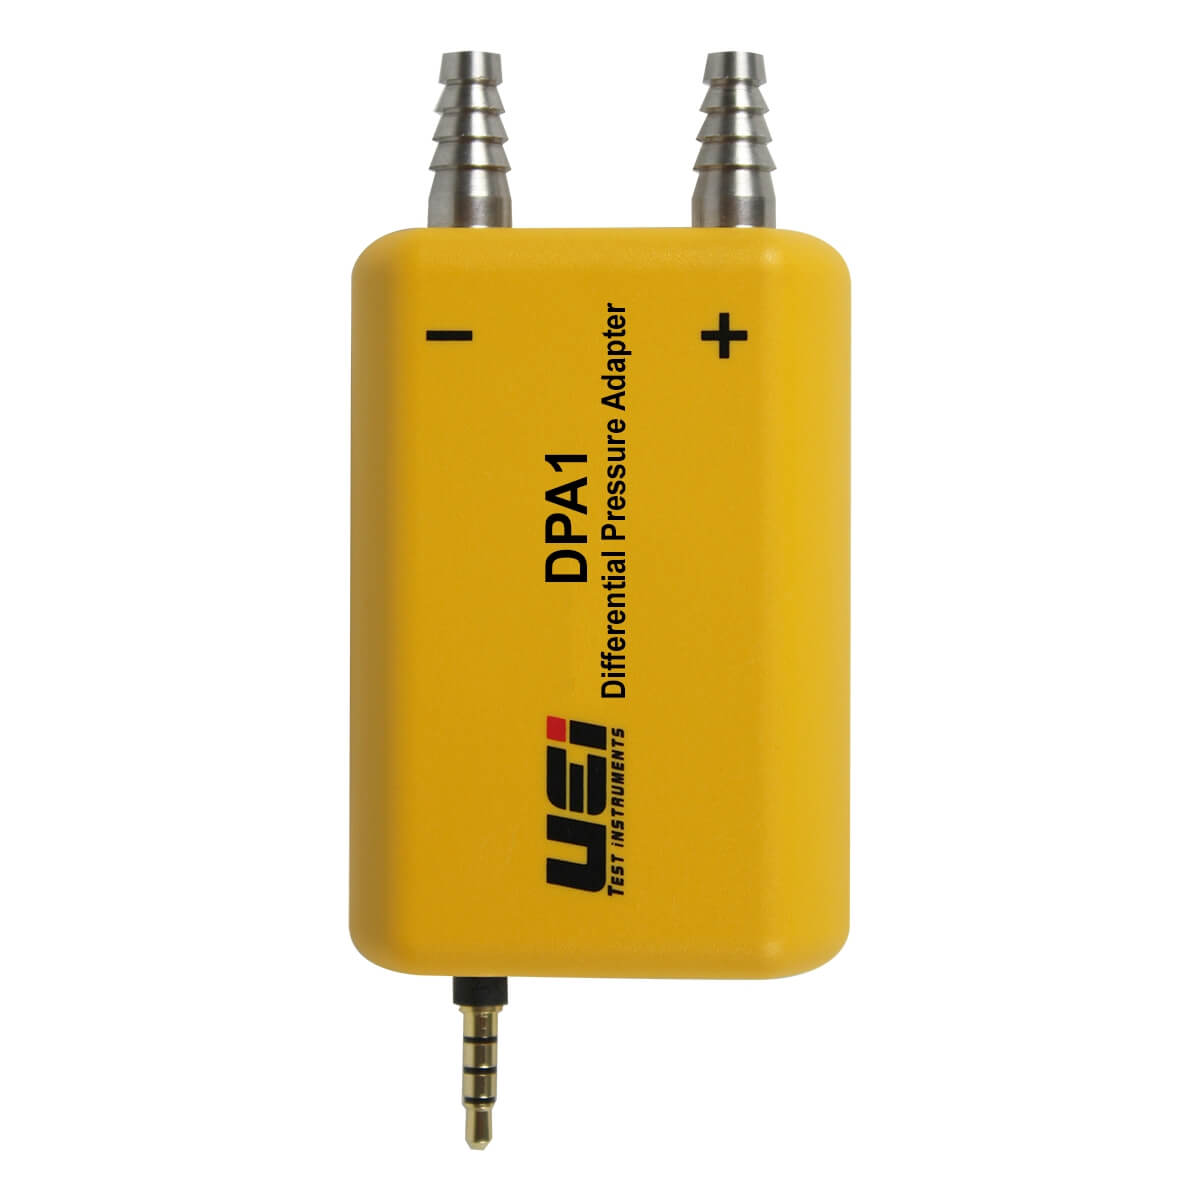 UEi DPA1 Dual Differential Pressure Adapter for iPhone and Android